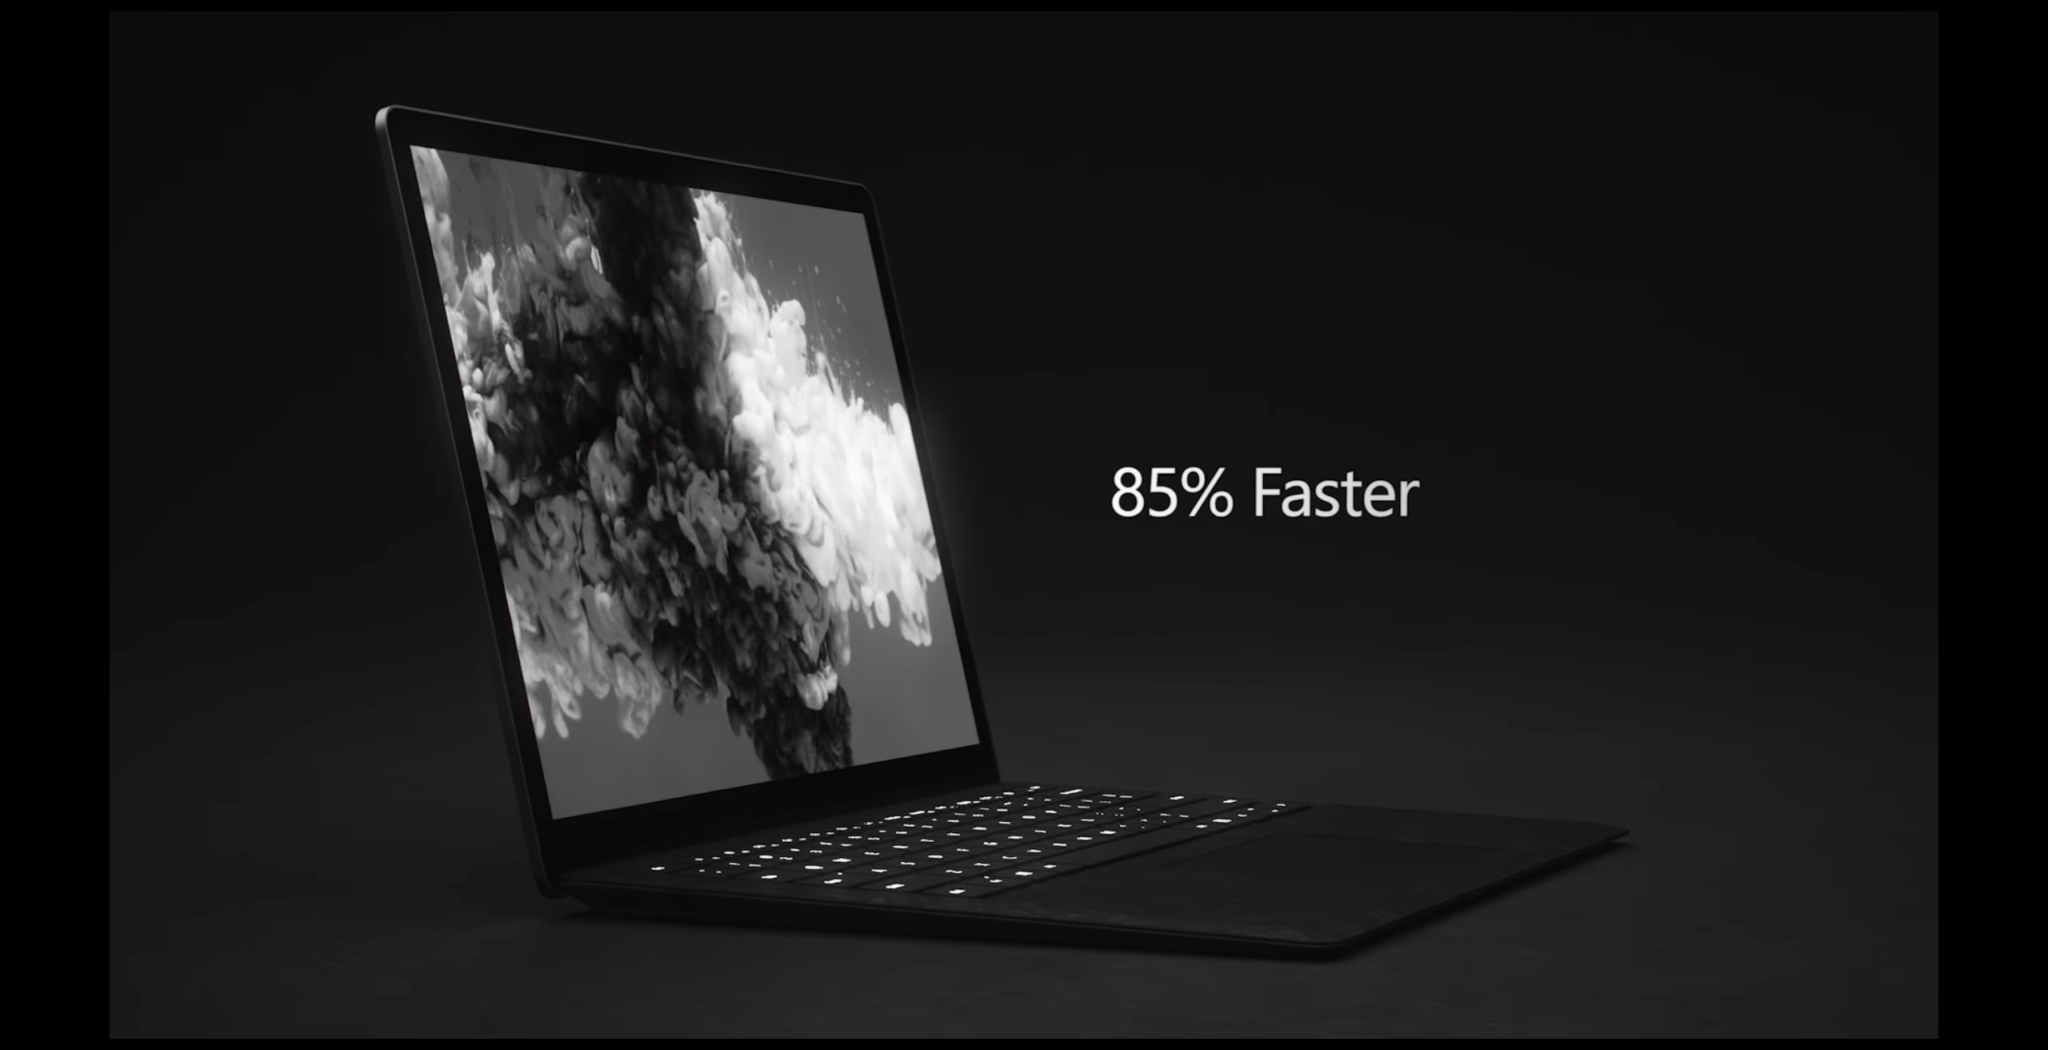 "Surface-Laptop-2 ""width ="" 2048 ""height ="" 1050 ""srcset ="" https://www.funzen.net/wp-content/uploads/2019/08/Microsoft39s-new-Surface-Pro-6-and-Surface-Laptop-2-are.png 2048w, https: // elrincondechina.com/wp-content/uploads/2018/10/Surface-Laptop-2-300x154.png 300w, https://elrincondechina.com/wp-content/uploads/2018/10/Surface-Laptop-2-1024x525 .png 1024w, https://elrincondechina.com/wp-content/uploads/2018/10/Surface-Laptop-2-600x308.png 600w, https://elrincondechina.com/wp-content/uploads/2018/10 /Surface-Laptop-2-280x144.png 280w ""sizes ="" (max-width: 2048px) 100vw, 2048px ""/></p><div class='code-block code-block-7' style='margin: 8px auto; text-align: center; display: block; clear: both;'> <div data-ad="